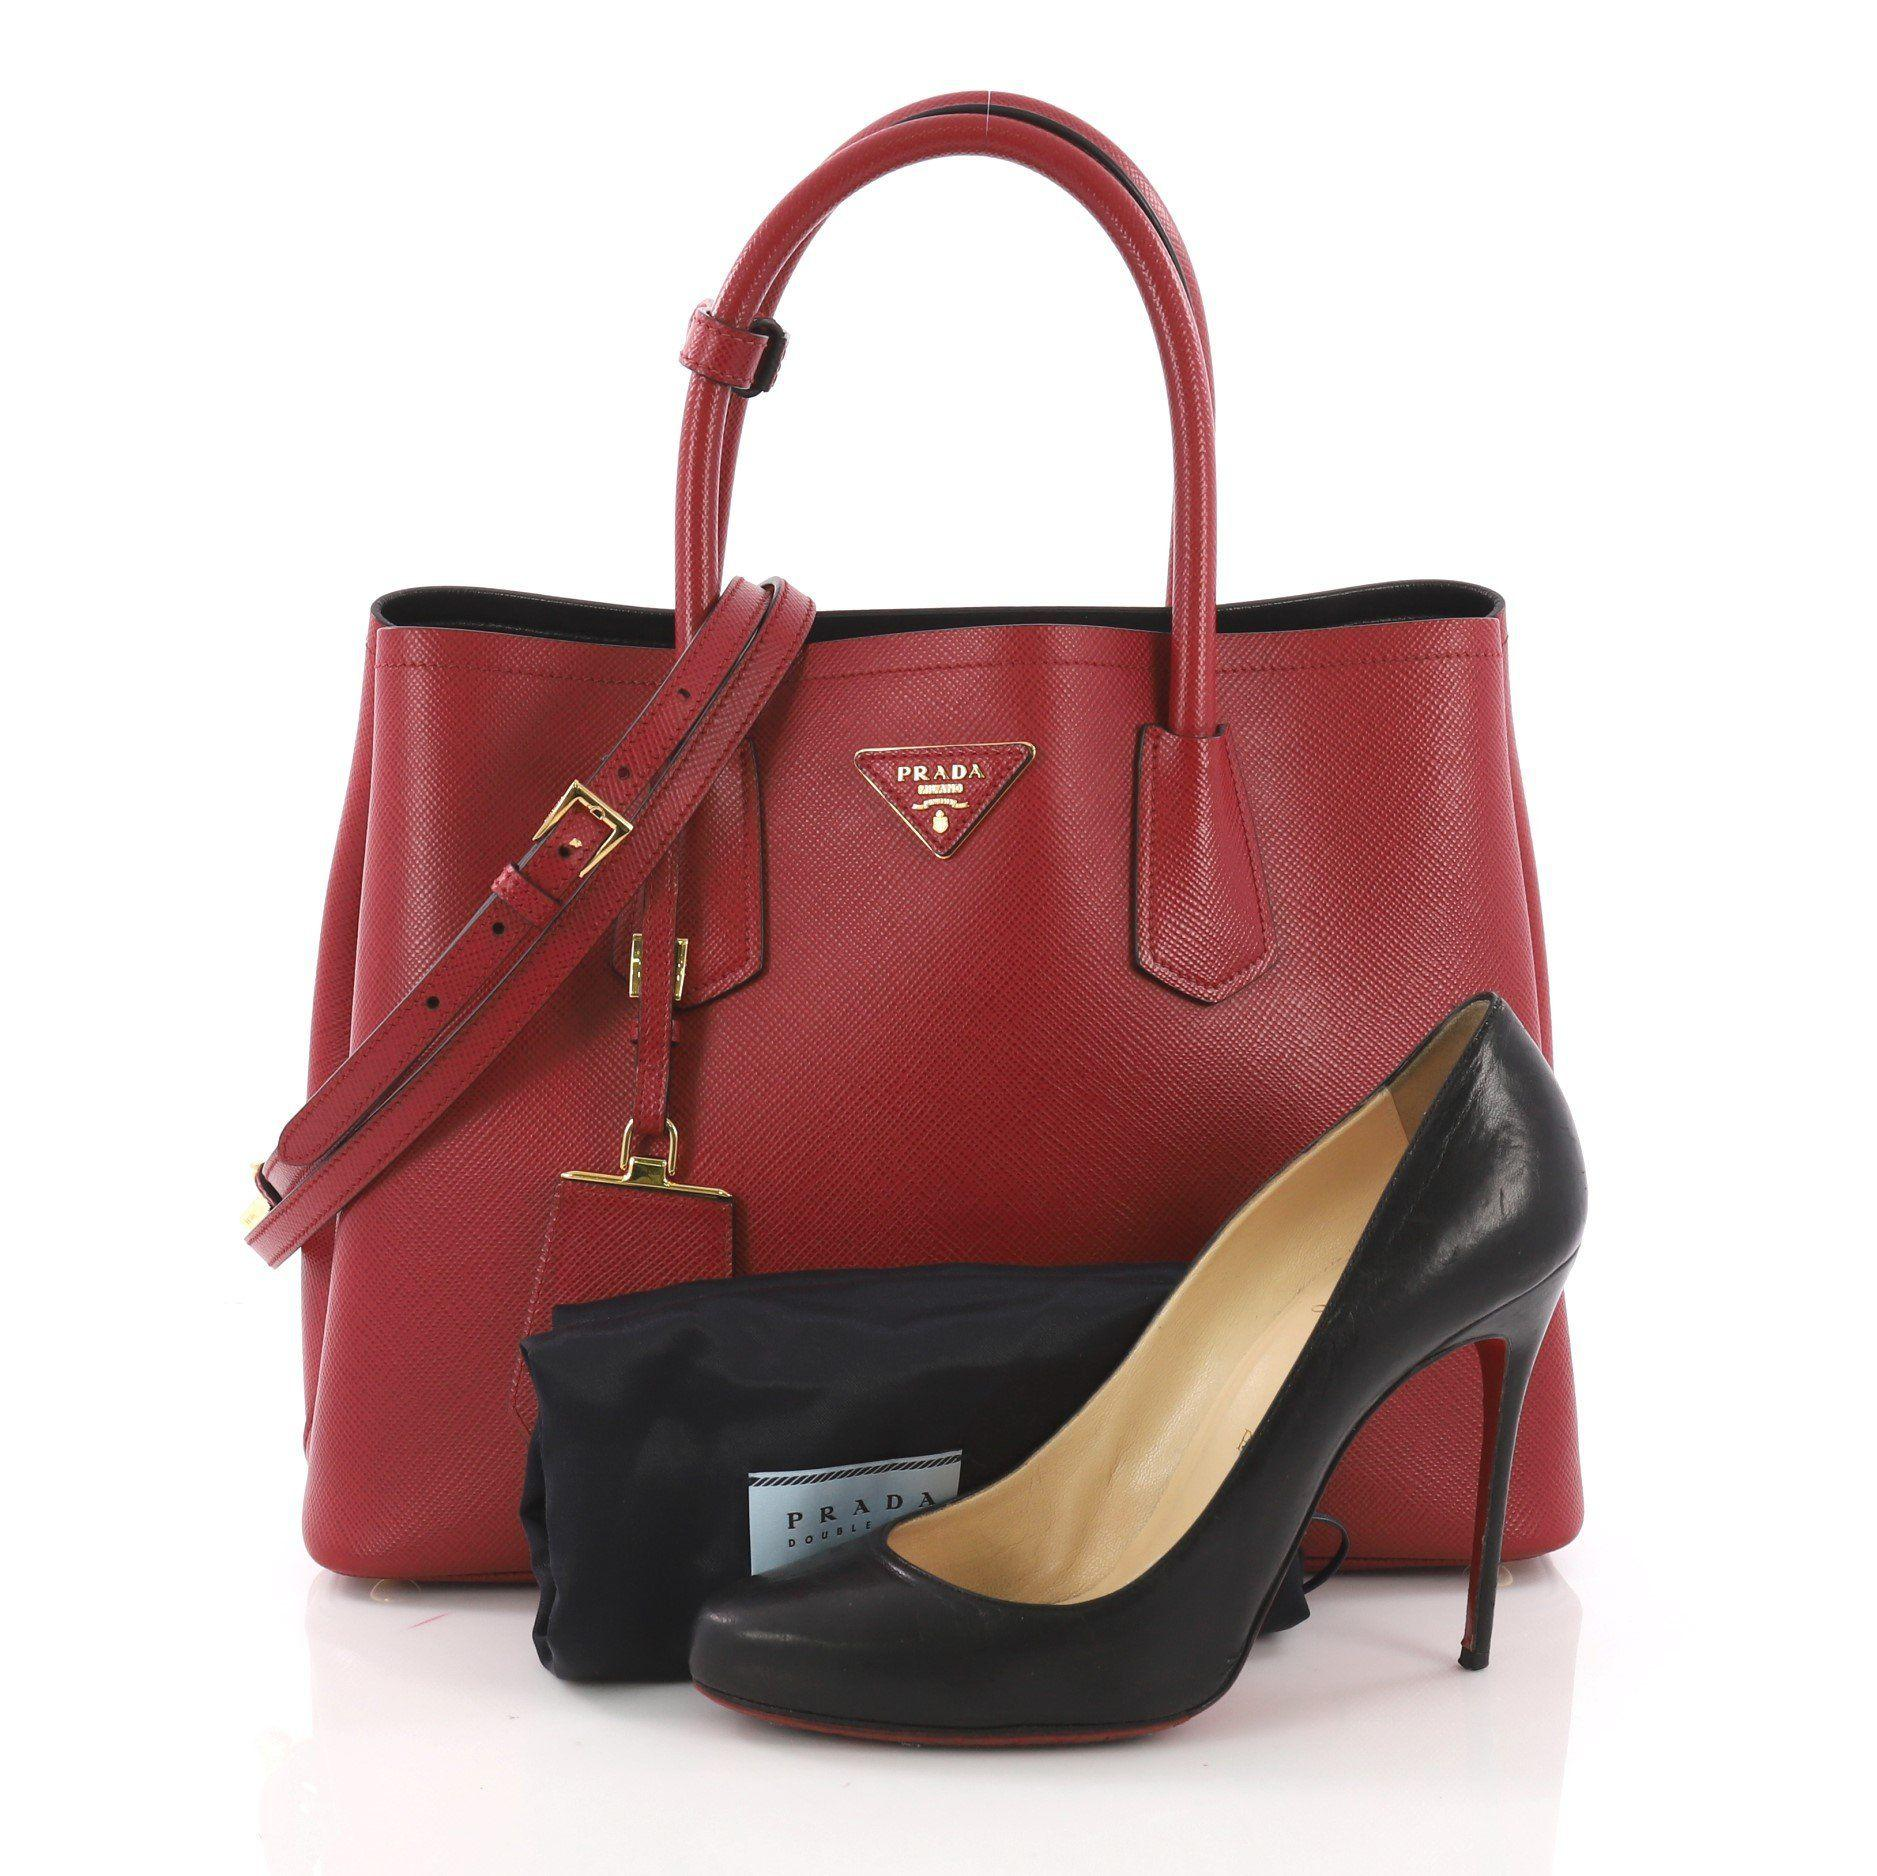 9cb9b49f456b Prada - Red Pre Owned Cuir Double Tote Saffiano Leather Small - Lyst. View  fullscreen